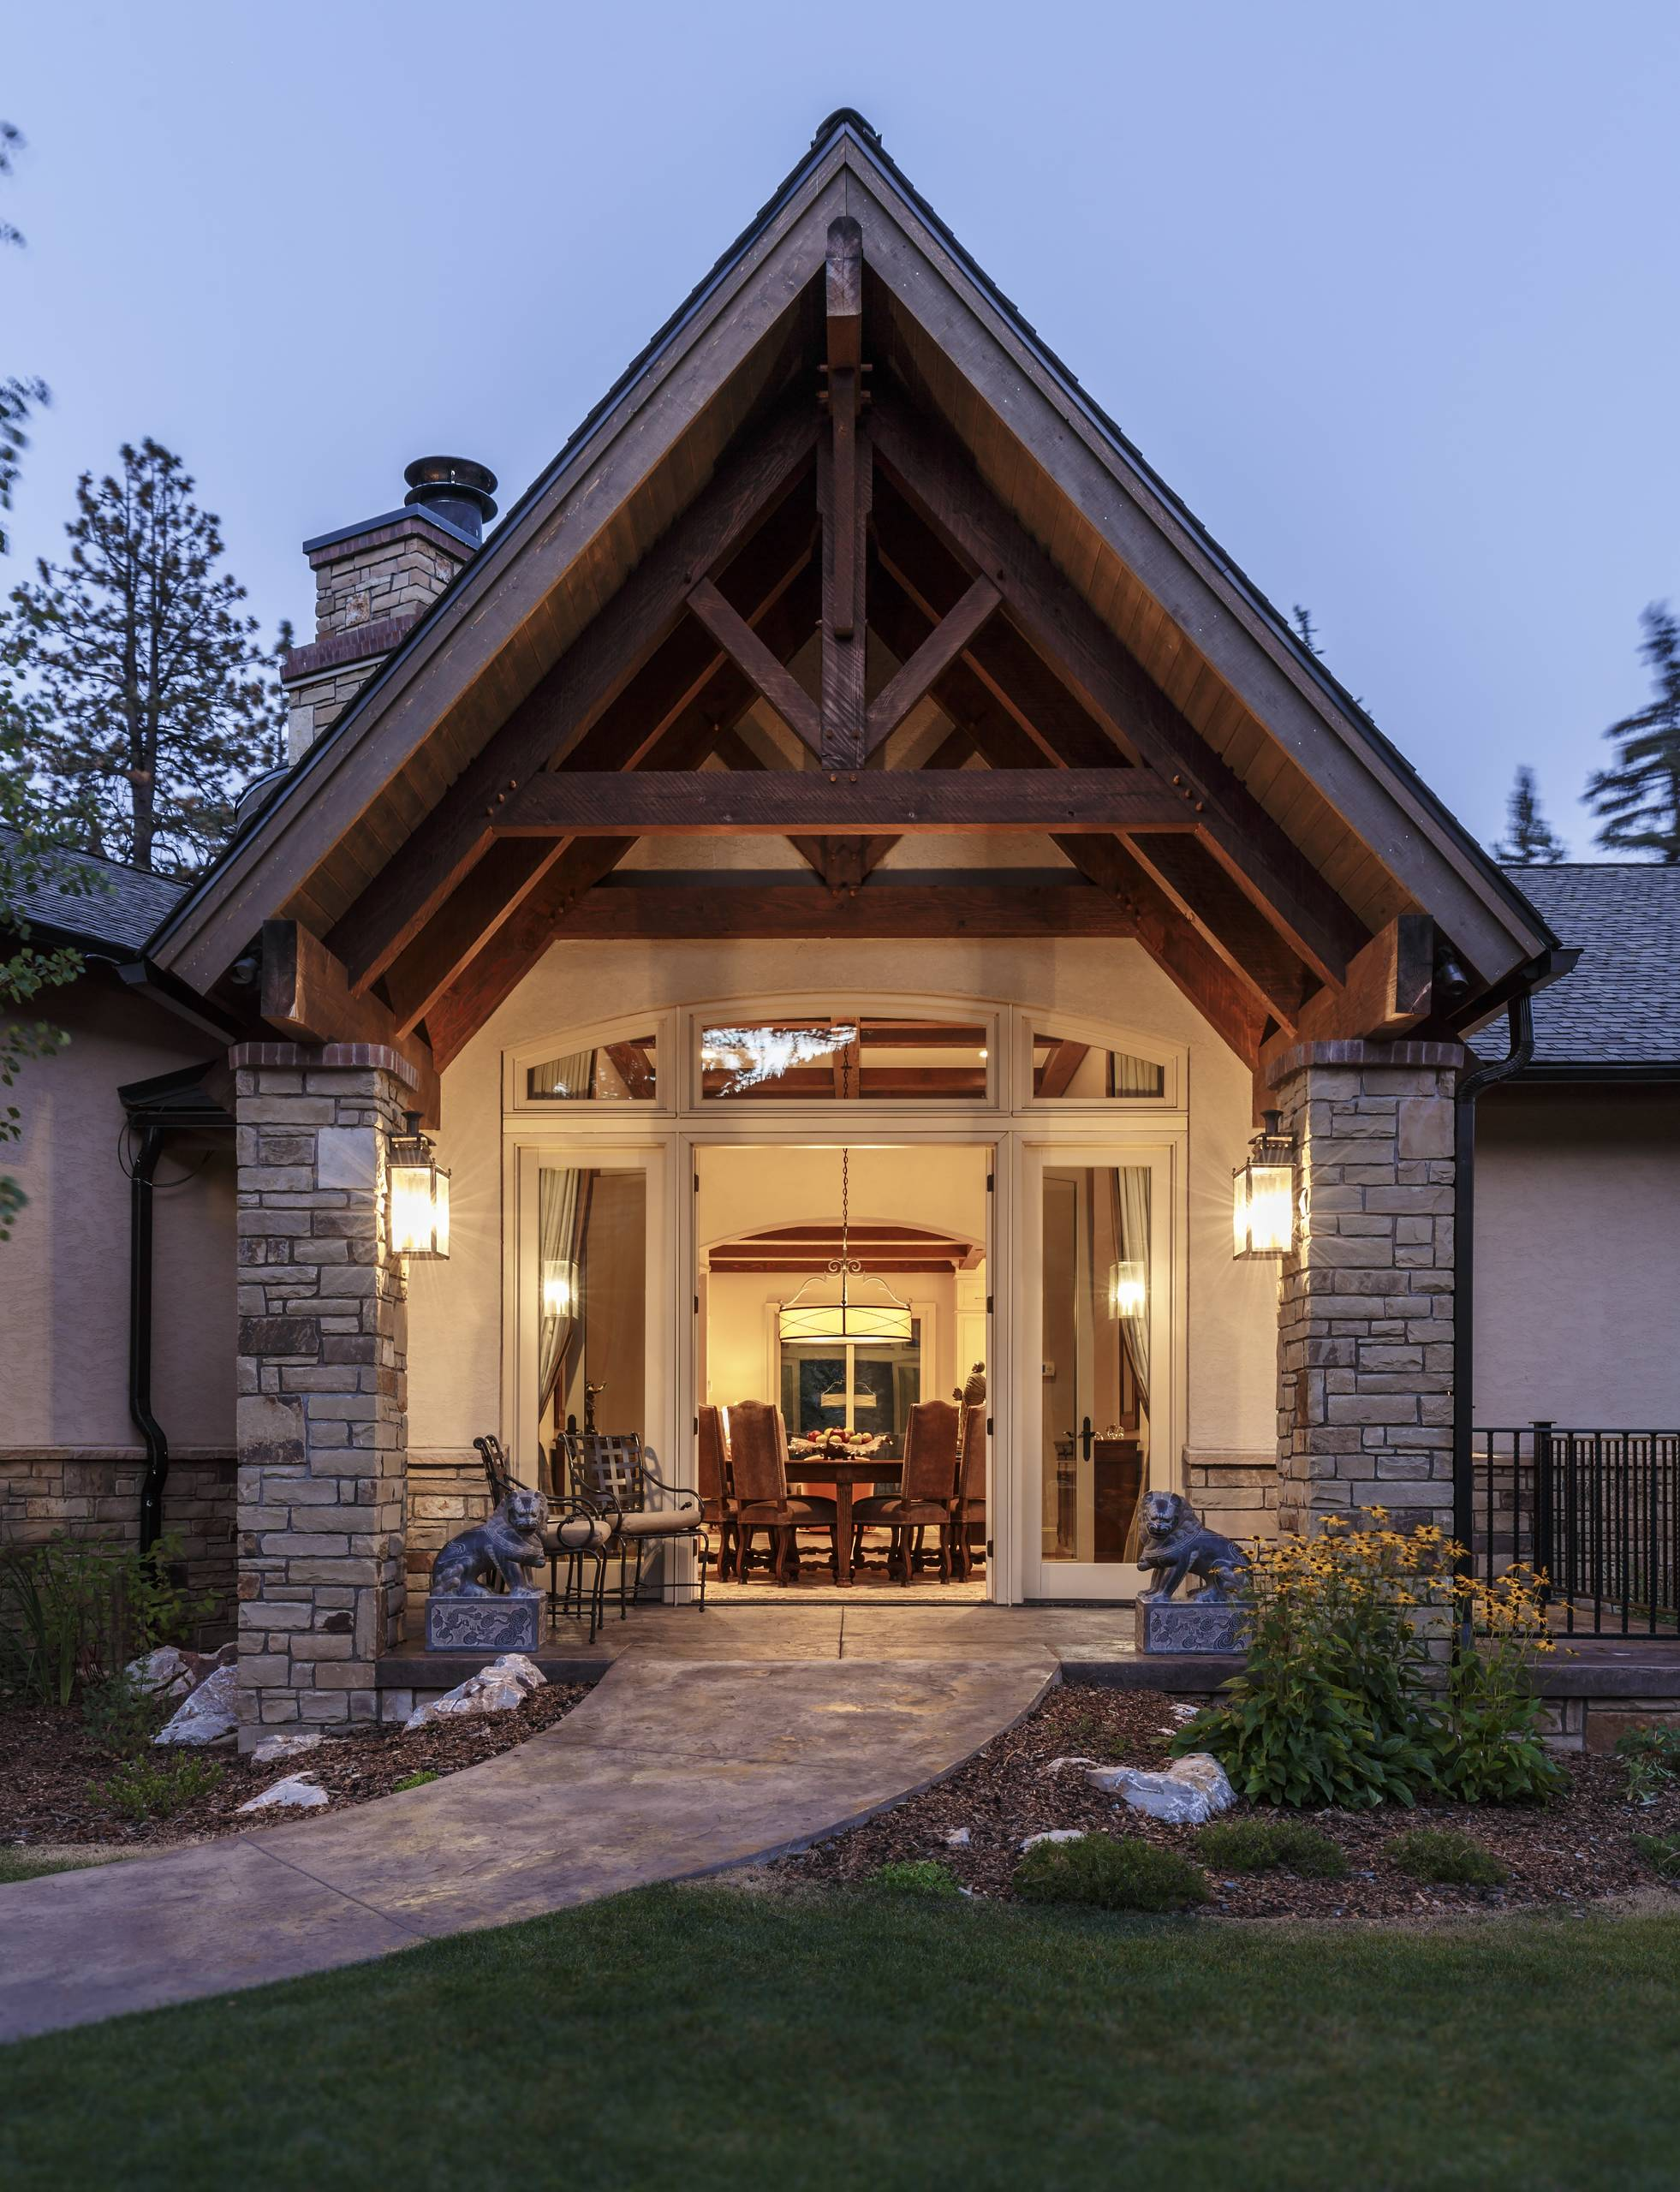 Certified Luxury Builders - Veritas Fine Homes Inc - Durango, CO - Weems Home